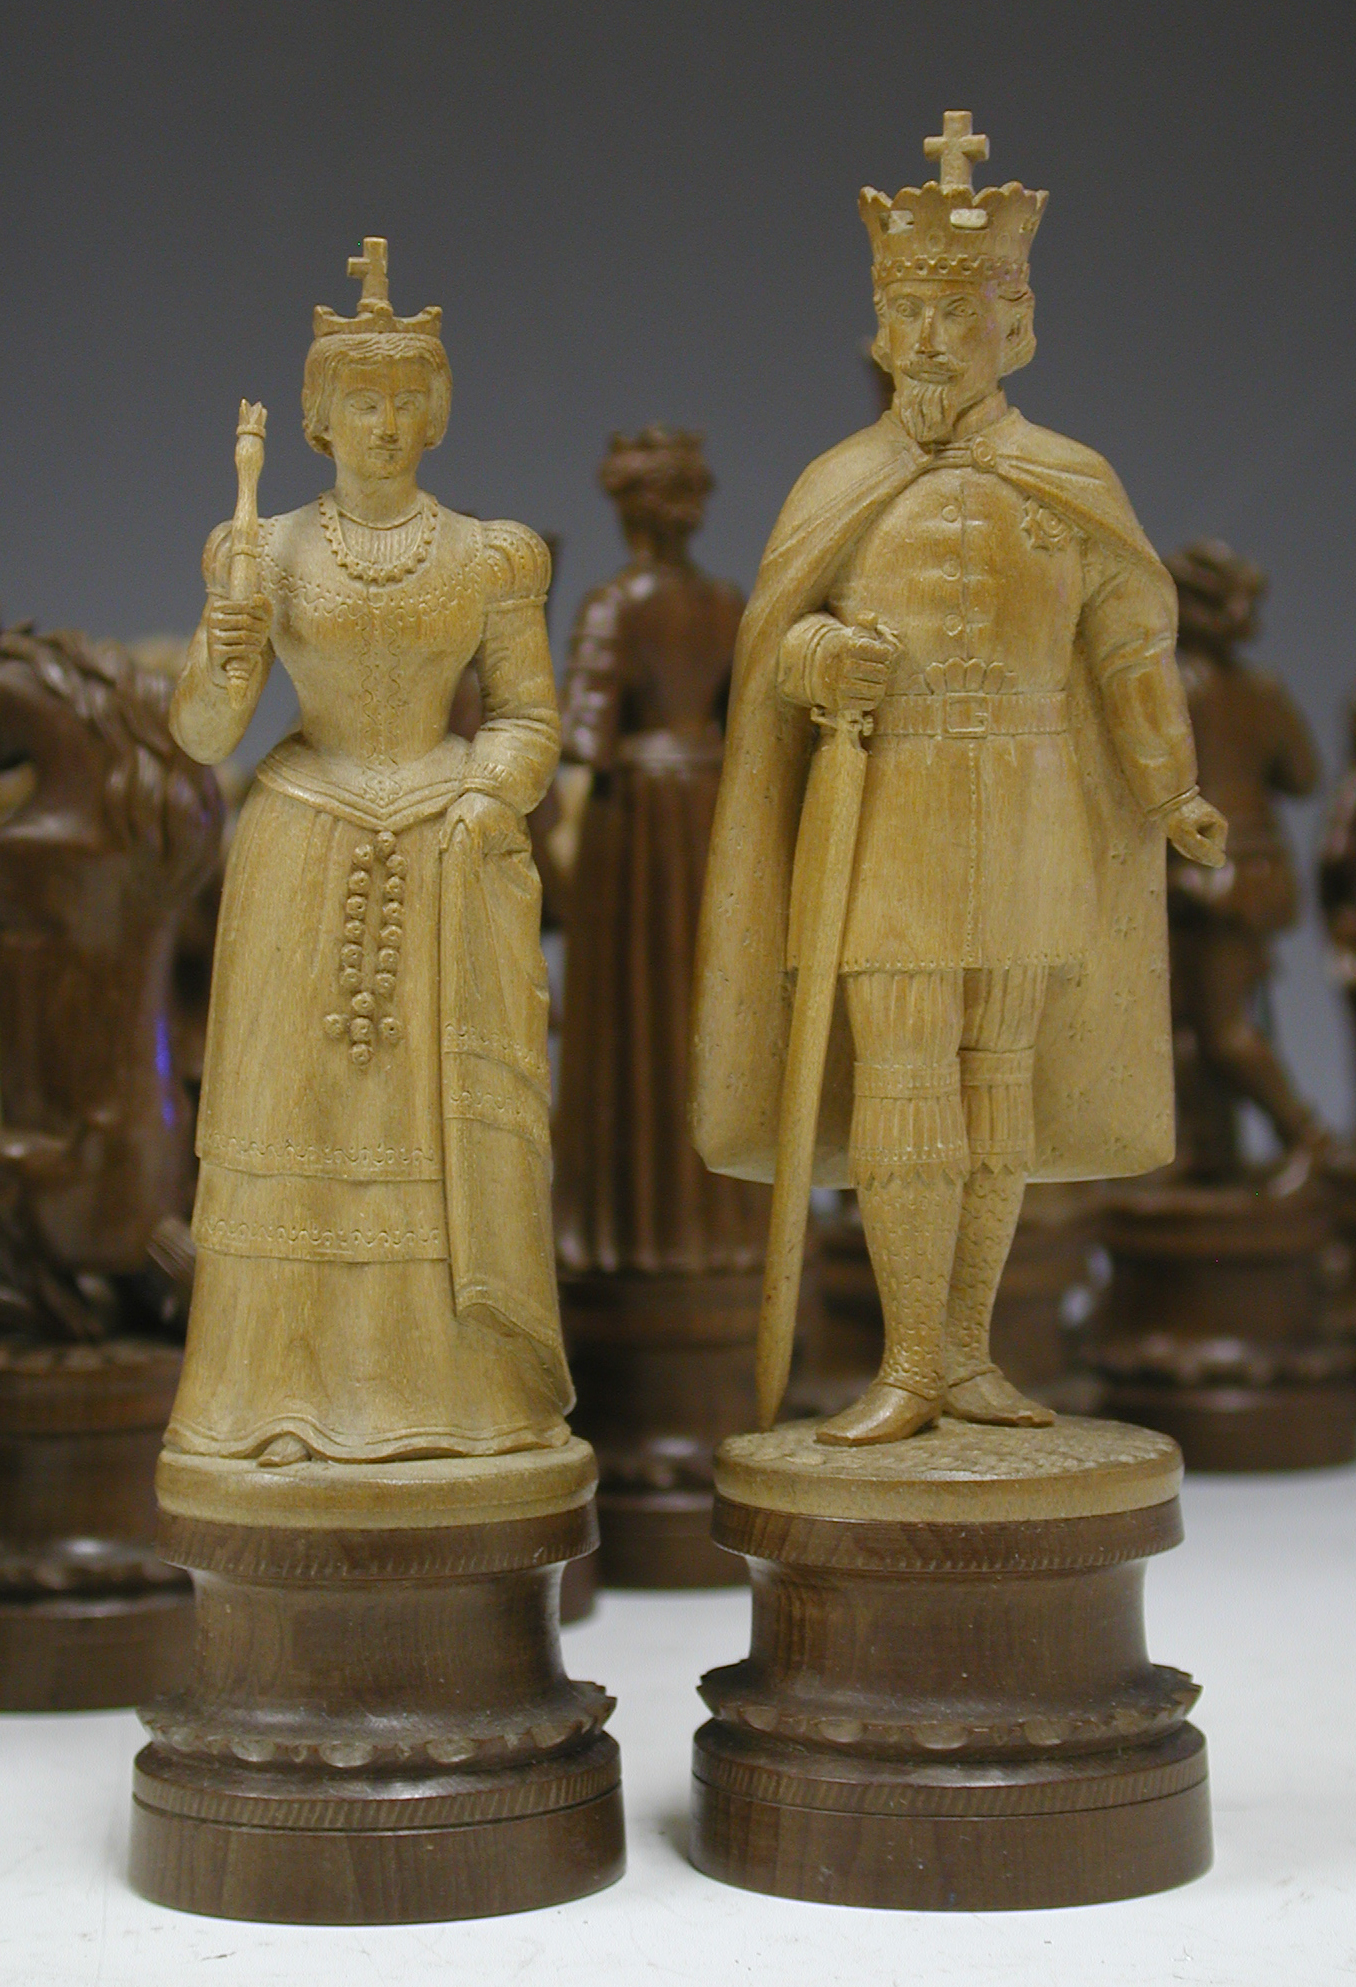 German Charlemagne Wooden Figural Set - King and Queen